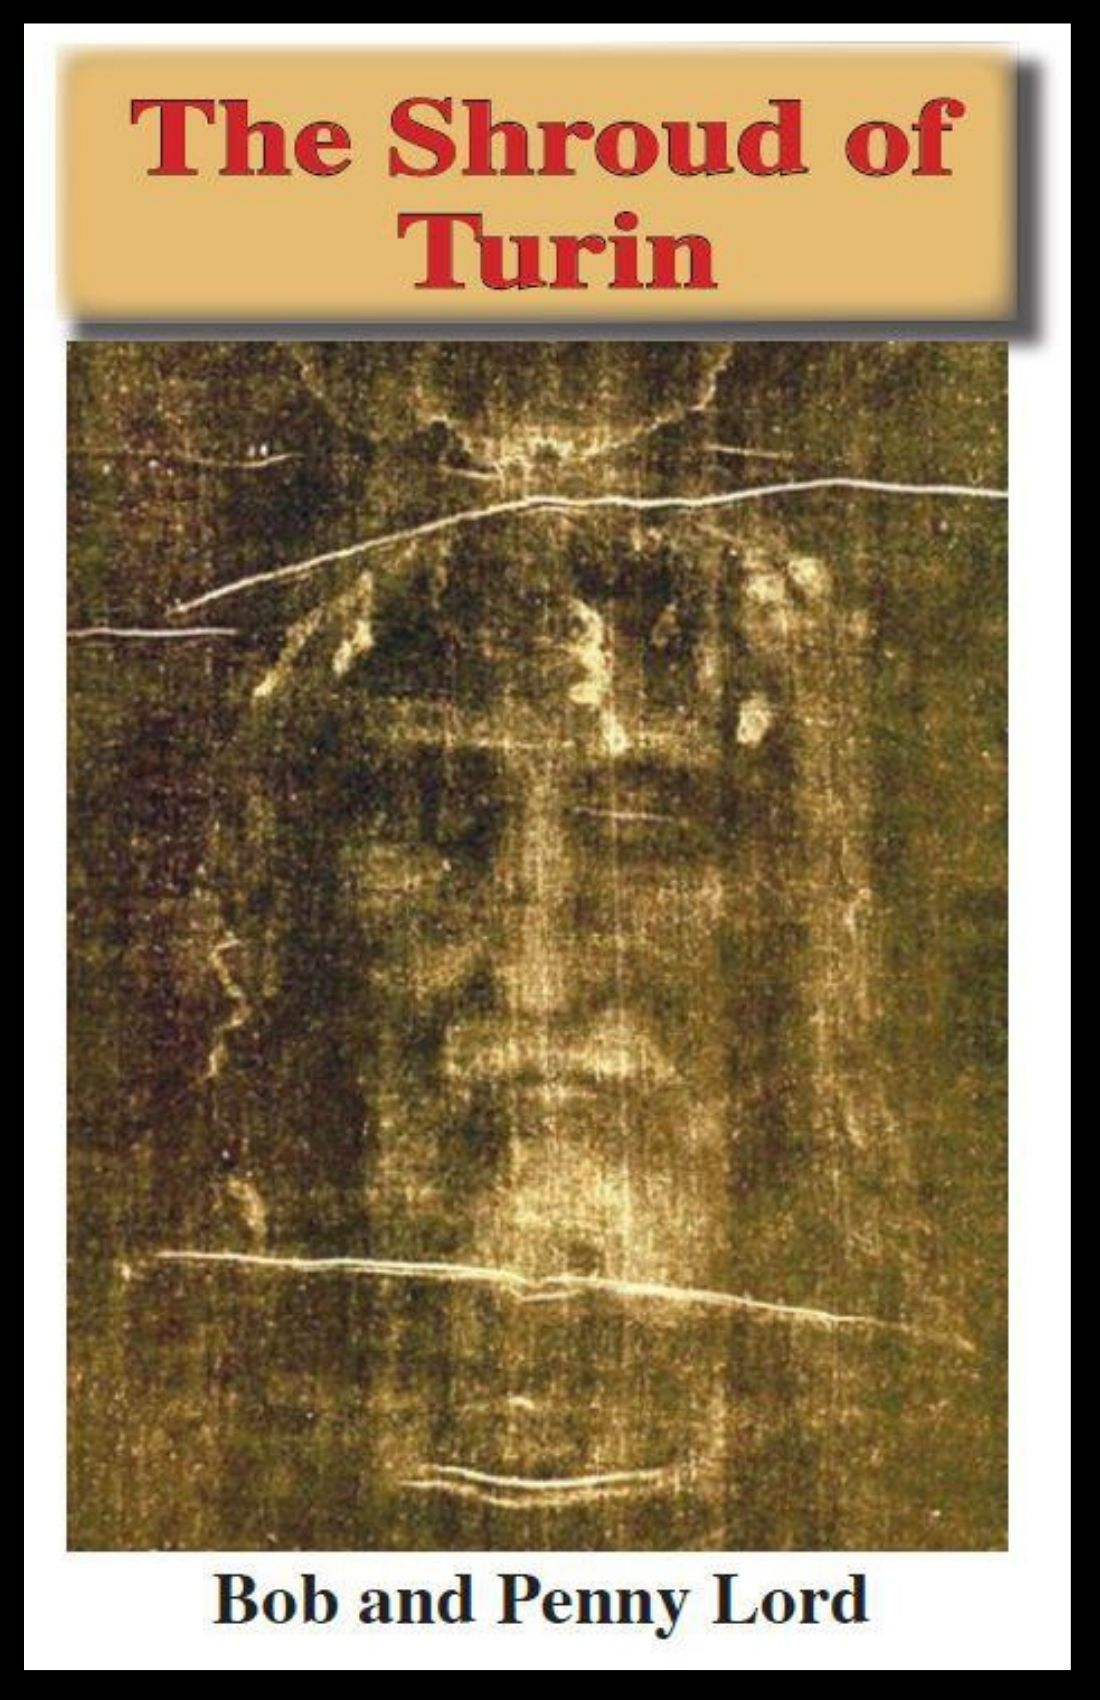 Shroud of Turin Minibook - Bob and Penny Lord